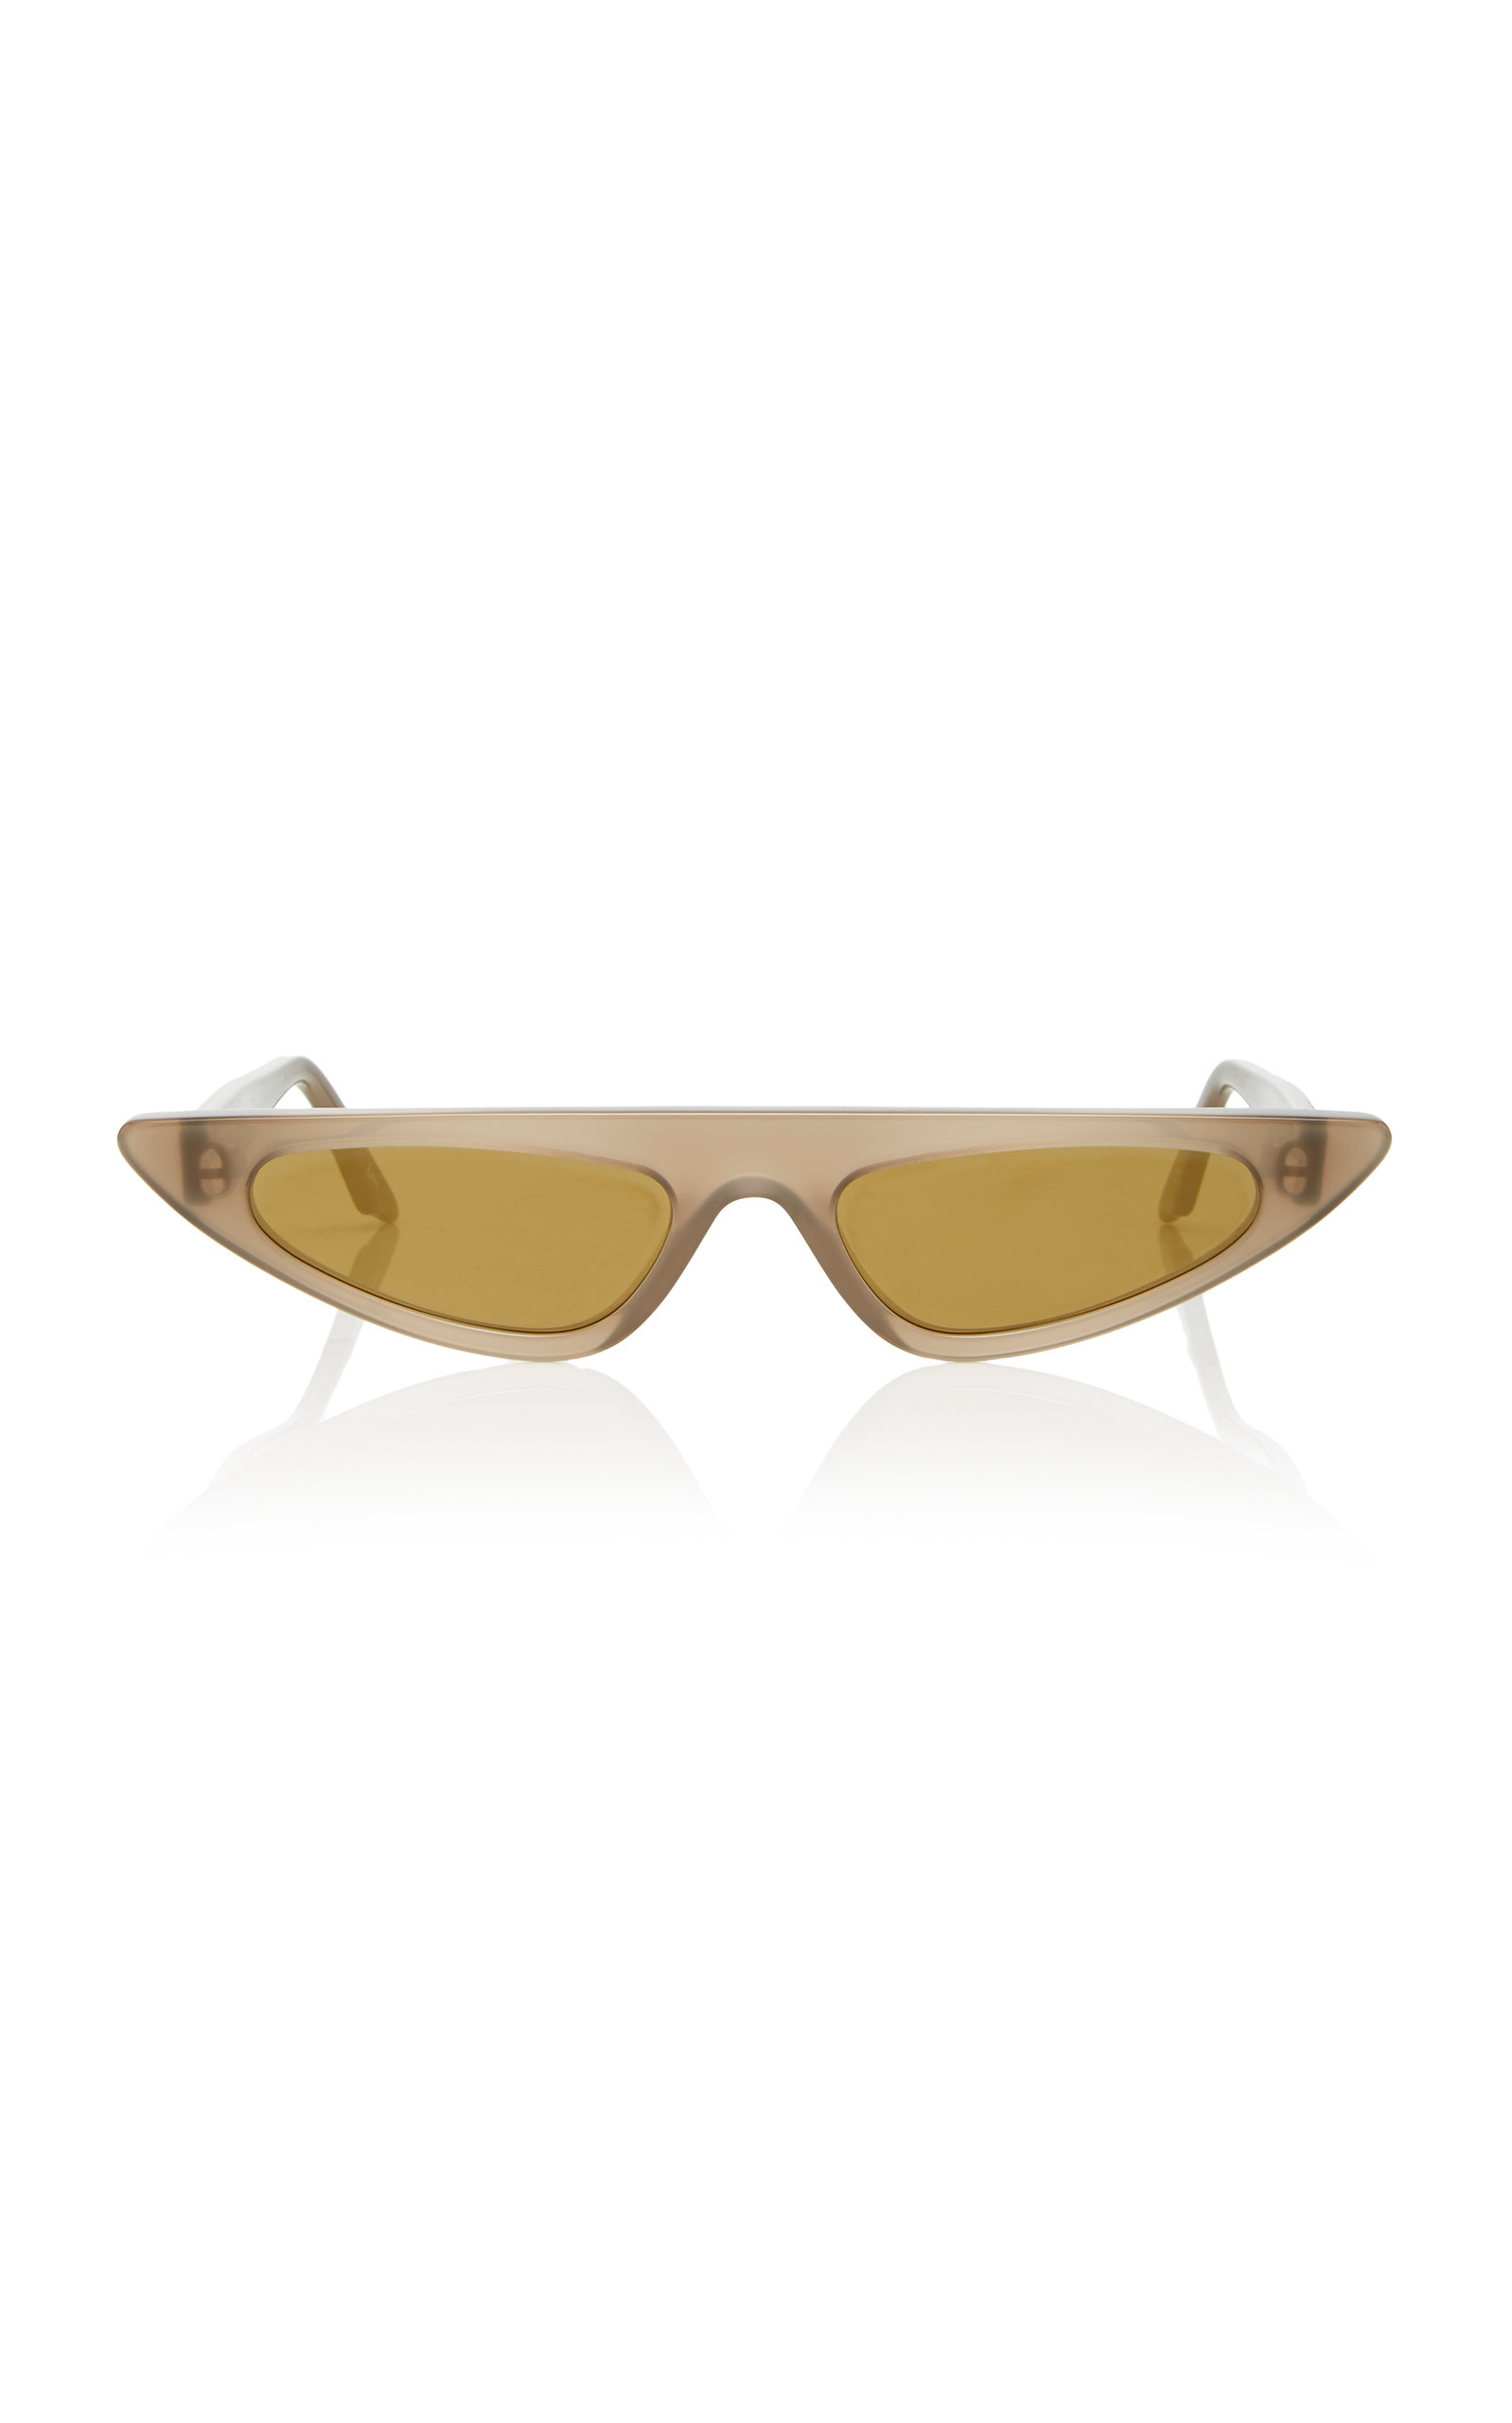 ANDY WOLF FLORENCE CAT EYE ACETATE SUNGLASSES